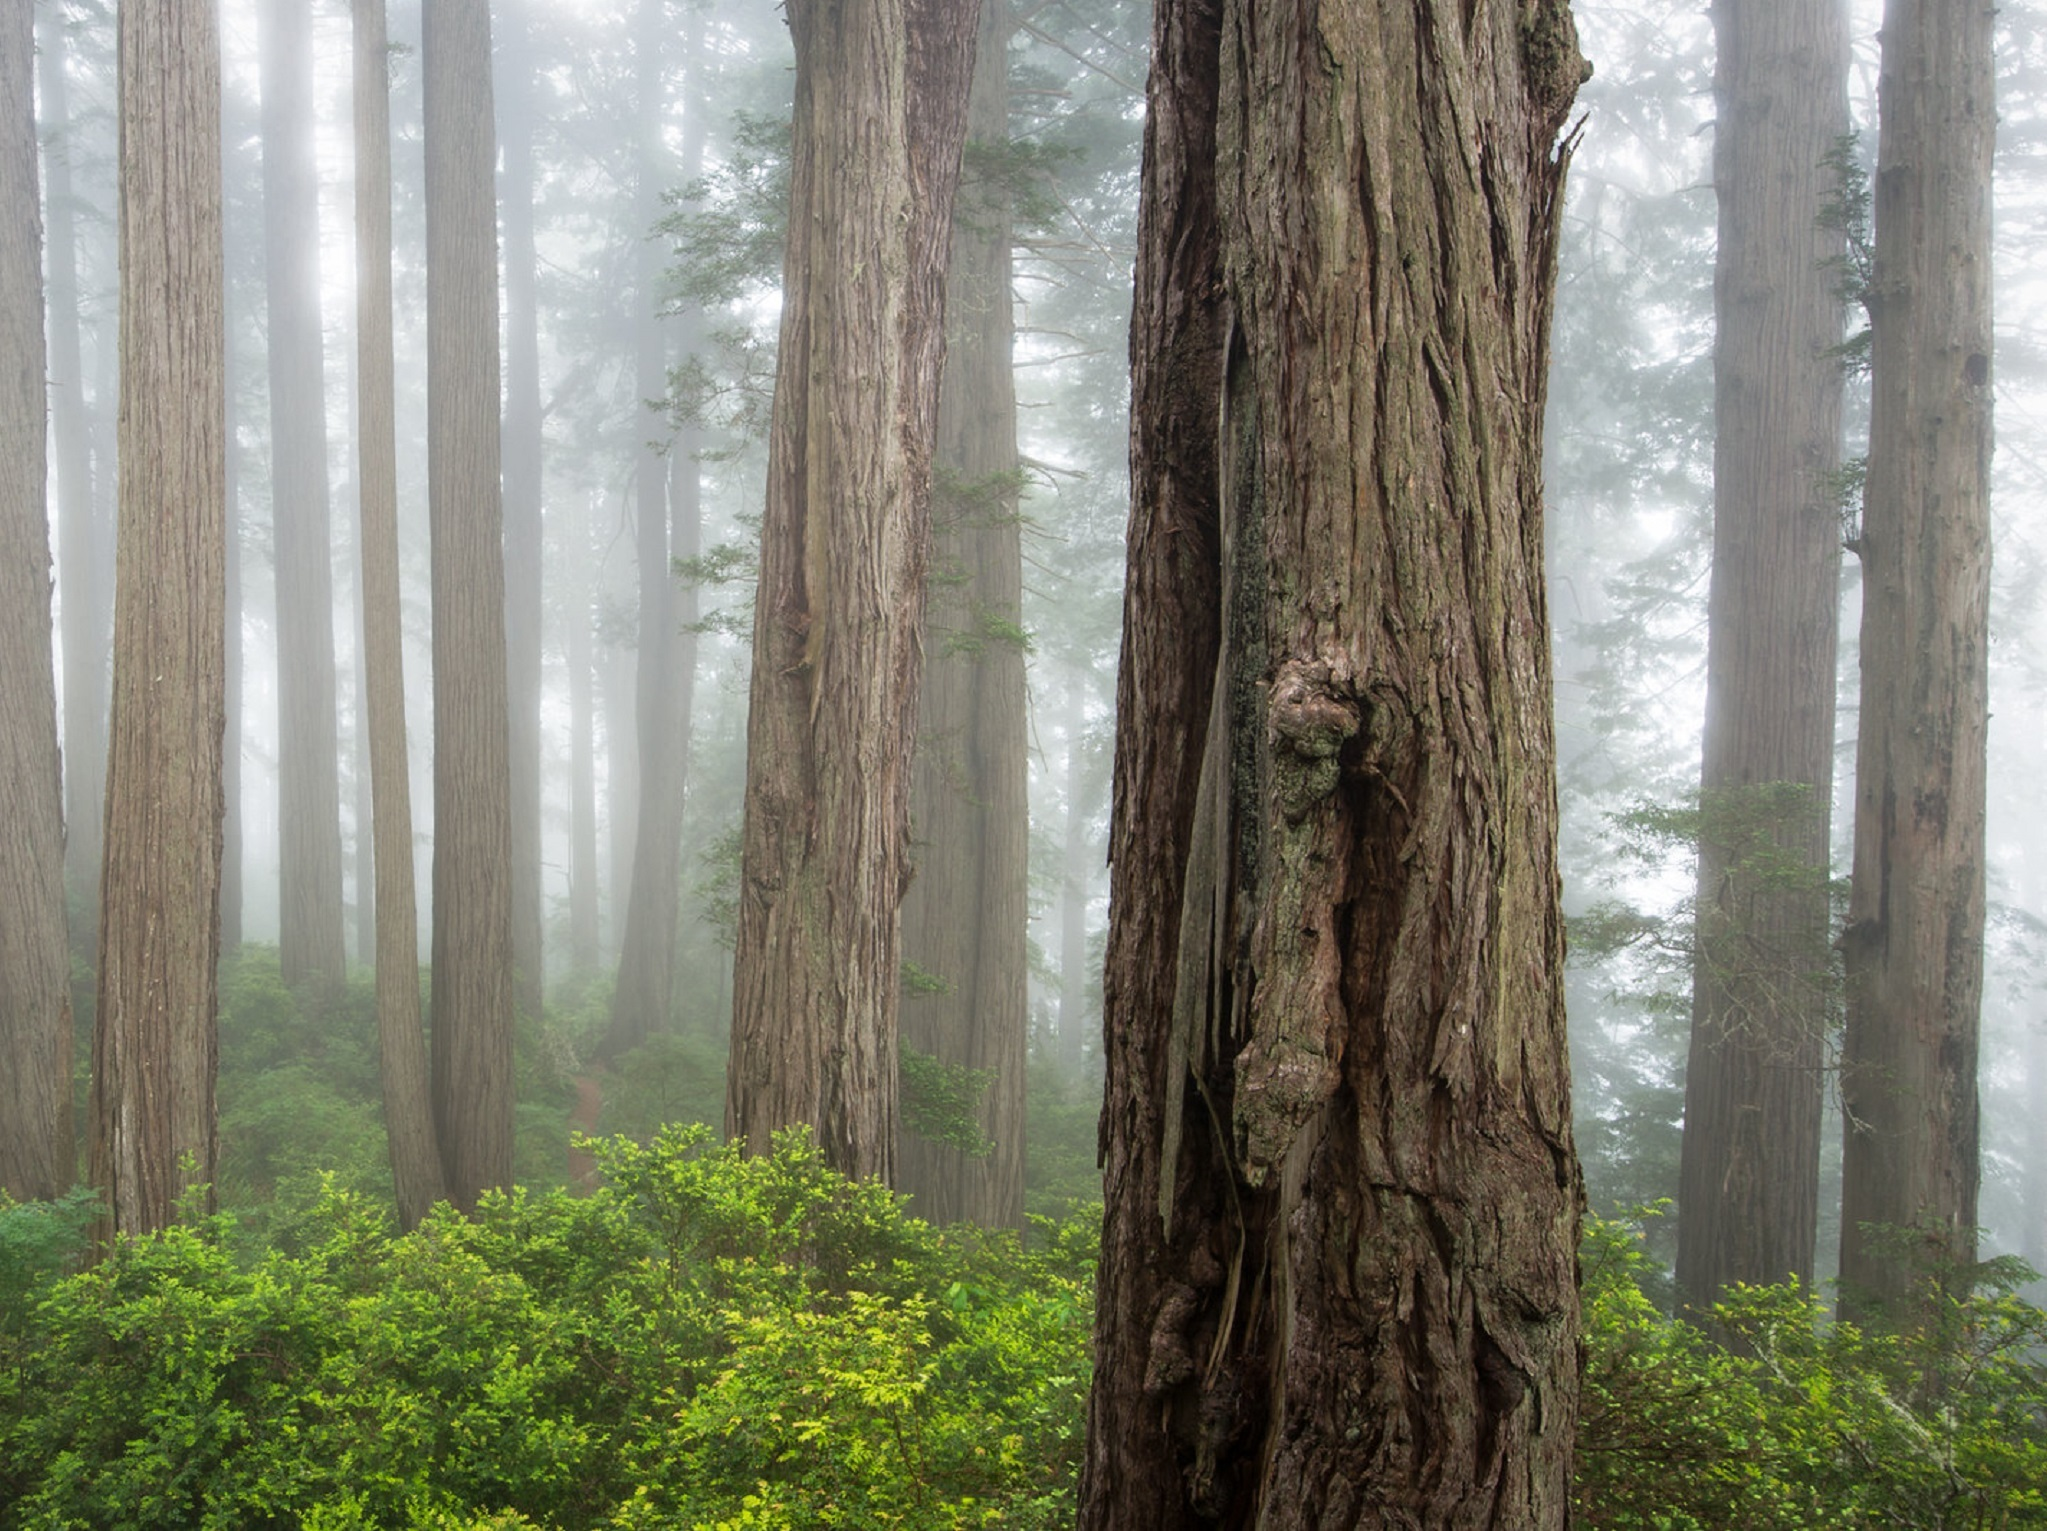 Redwood trees in the fog